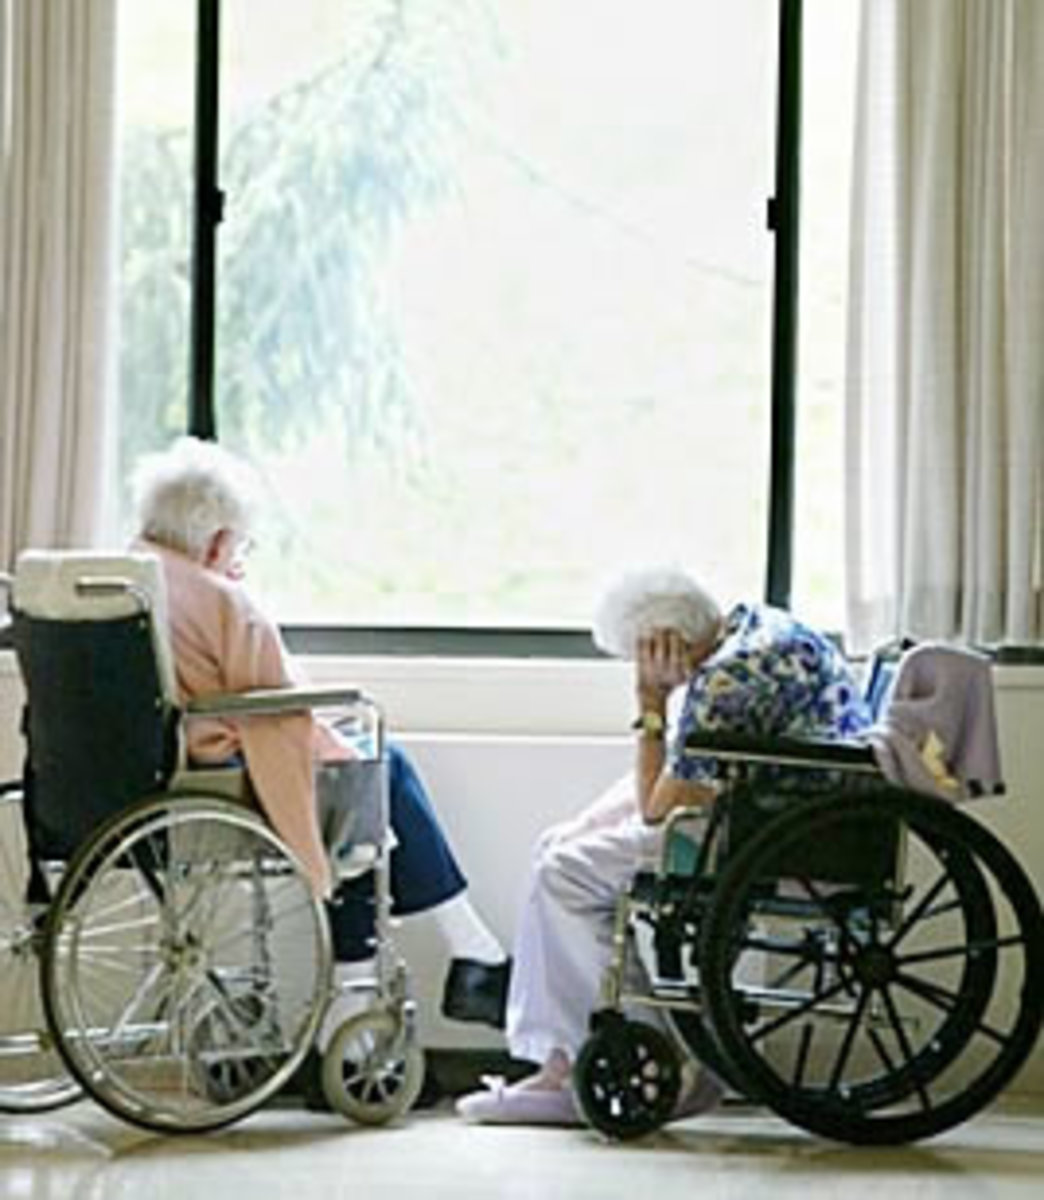 retirement homes a good or bad Good prices: retirement communities have reasonably priced, one-level homes,   this info is neither good nor bad, but should be included: 1.